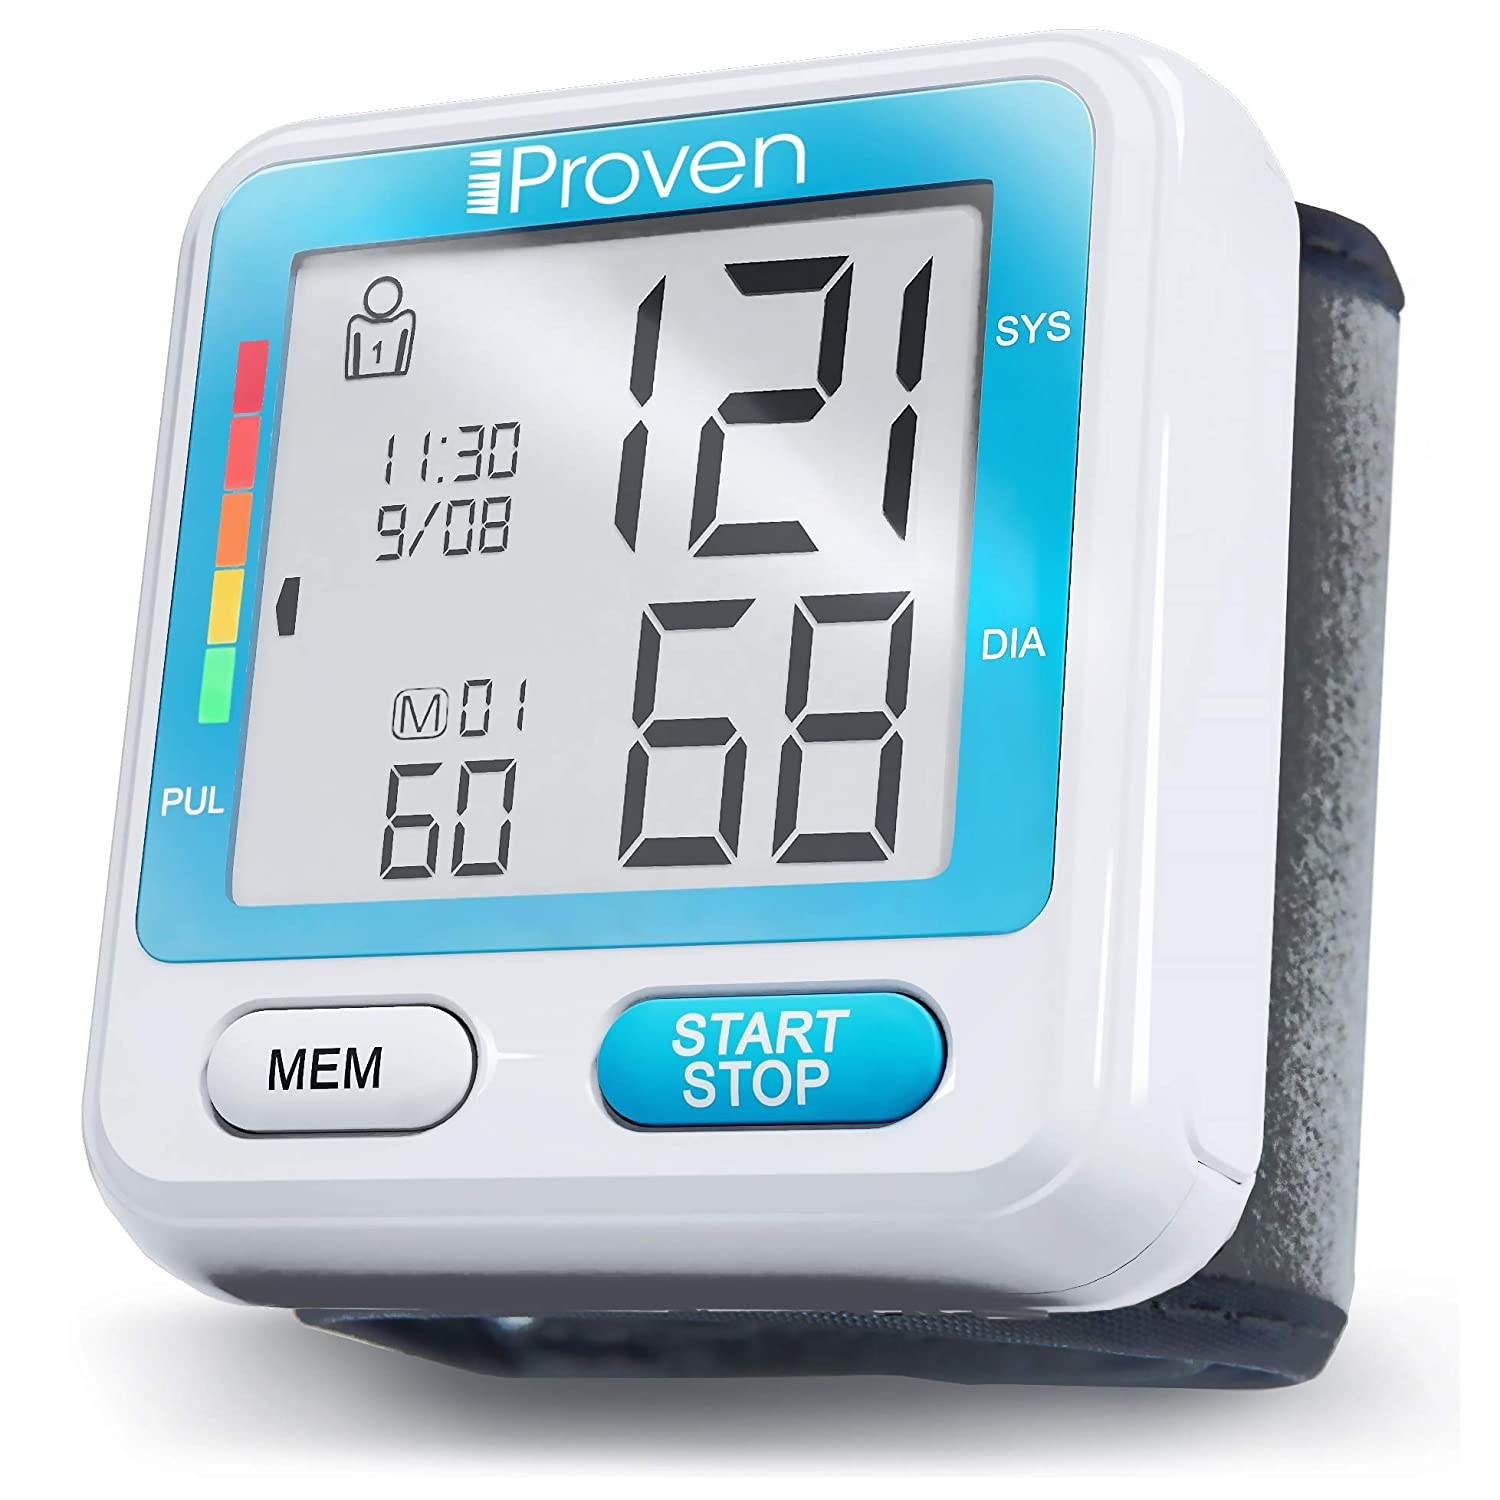 New 2019 Model iProven Blood Pressure Machine – BP Cuff for Wrist – with 2×90 Memories – Blood Pressure Cuff – Protective Case and Batteries Included – BPM-317 Wrist Blood Pressure Monitor